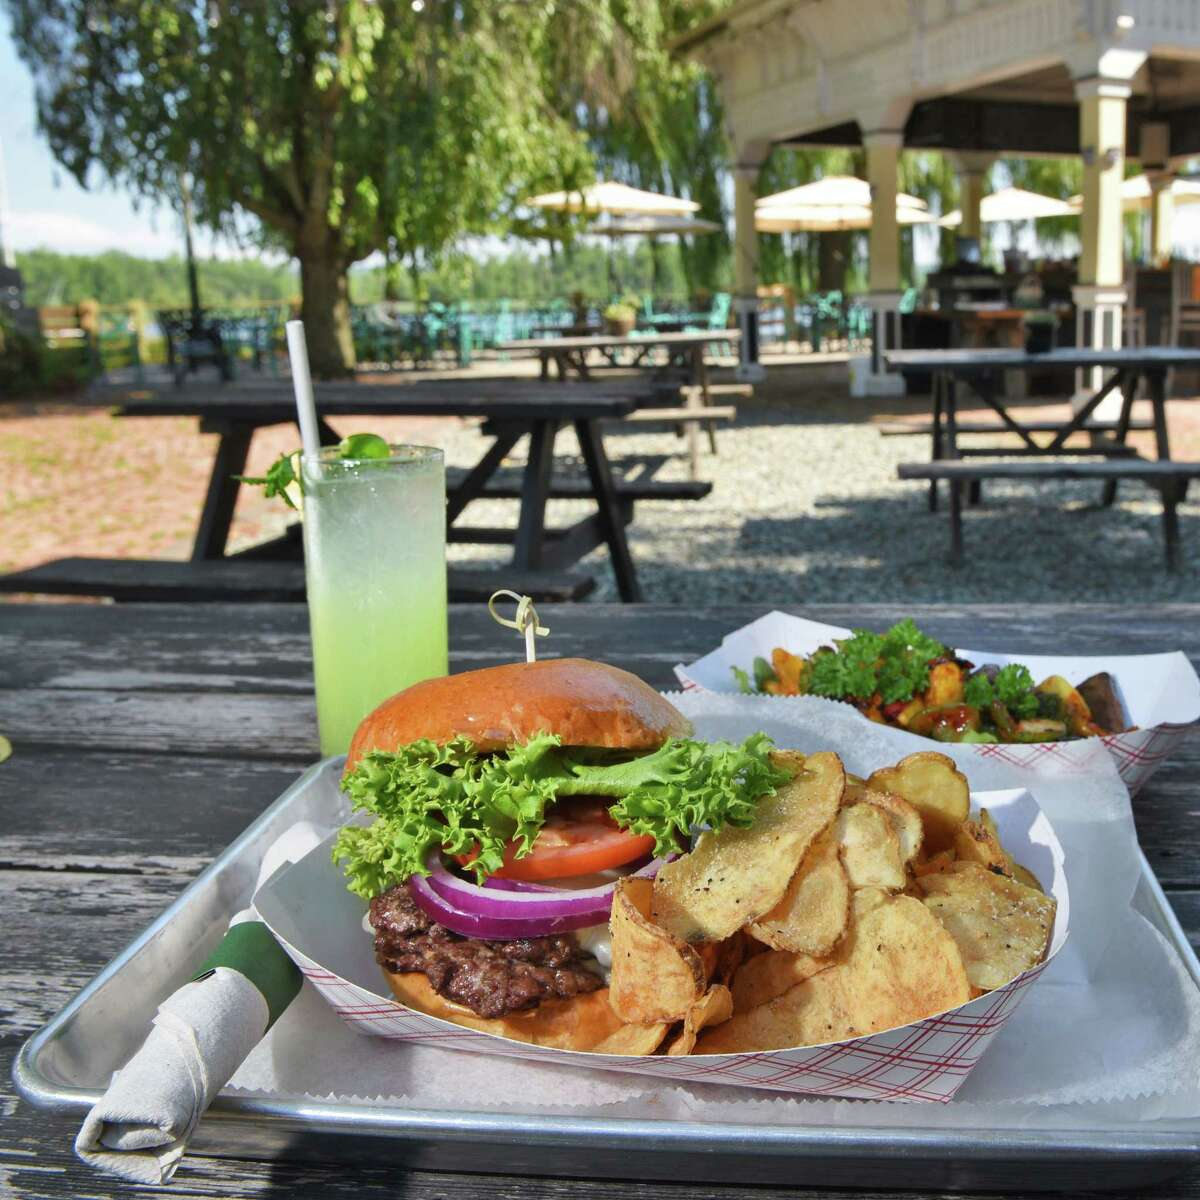 Want to take a drive and enjoy a meal and a beautiful view? Check The River Grill in Athens. Read our review.